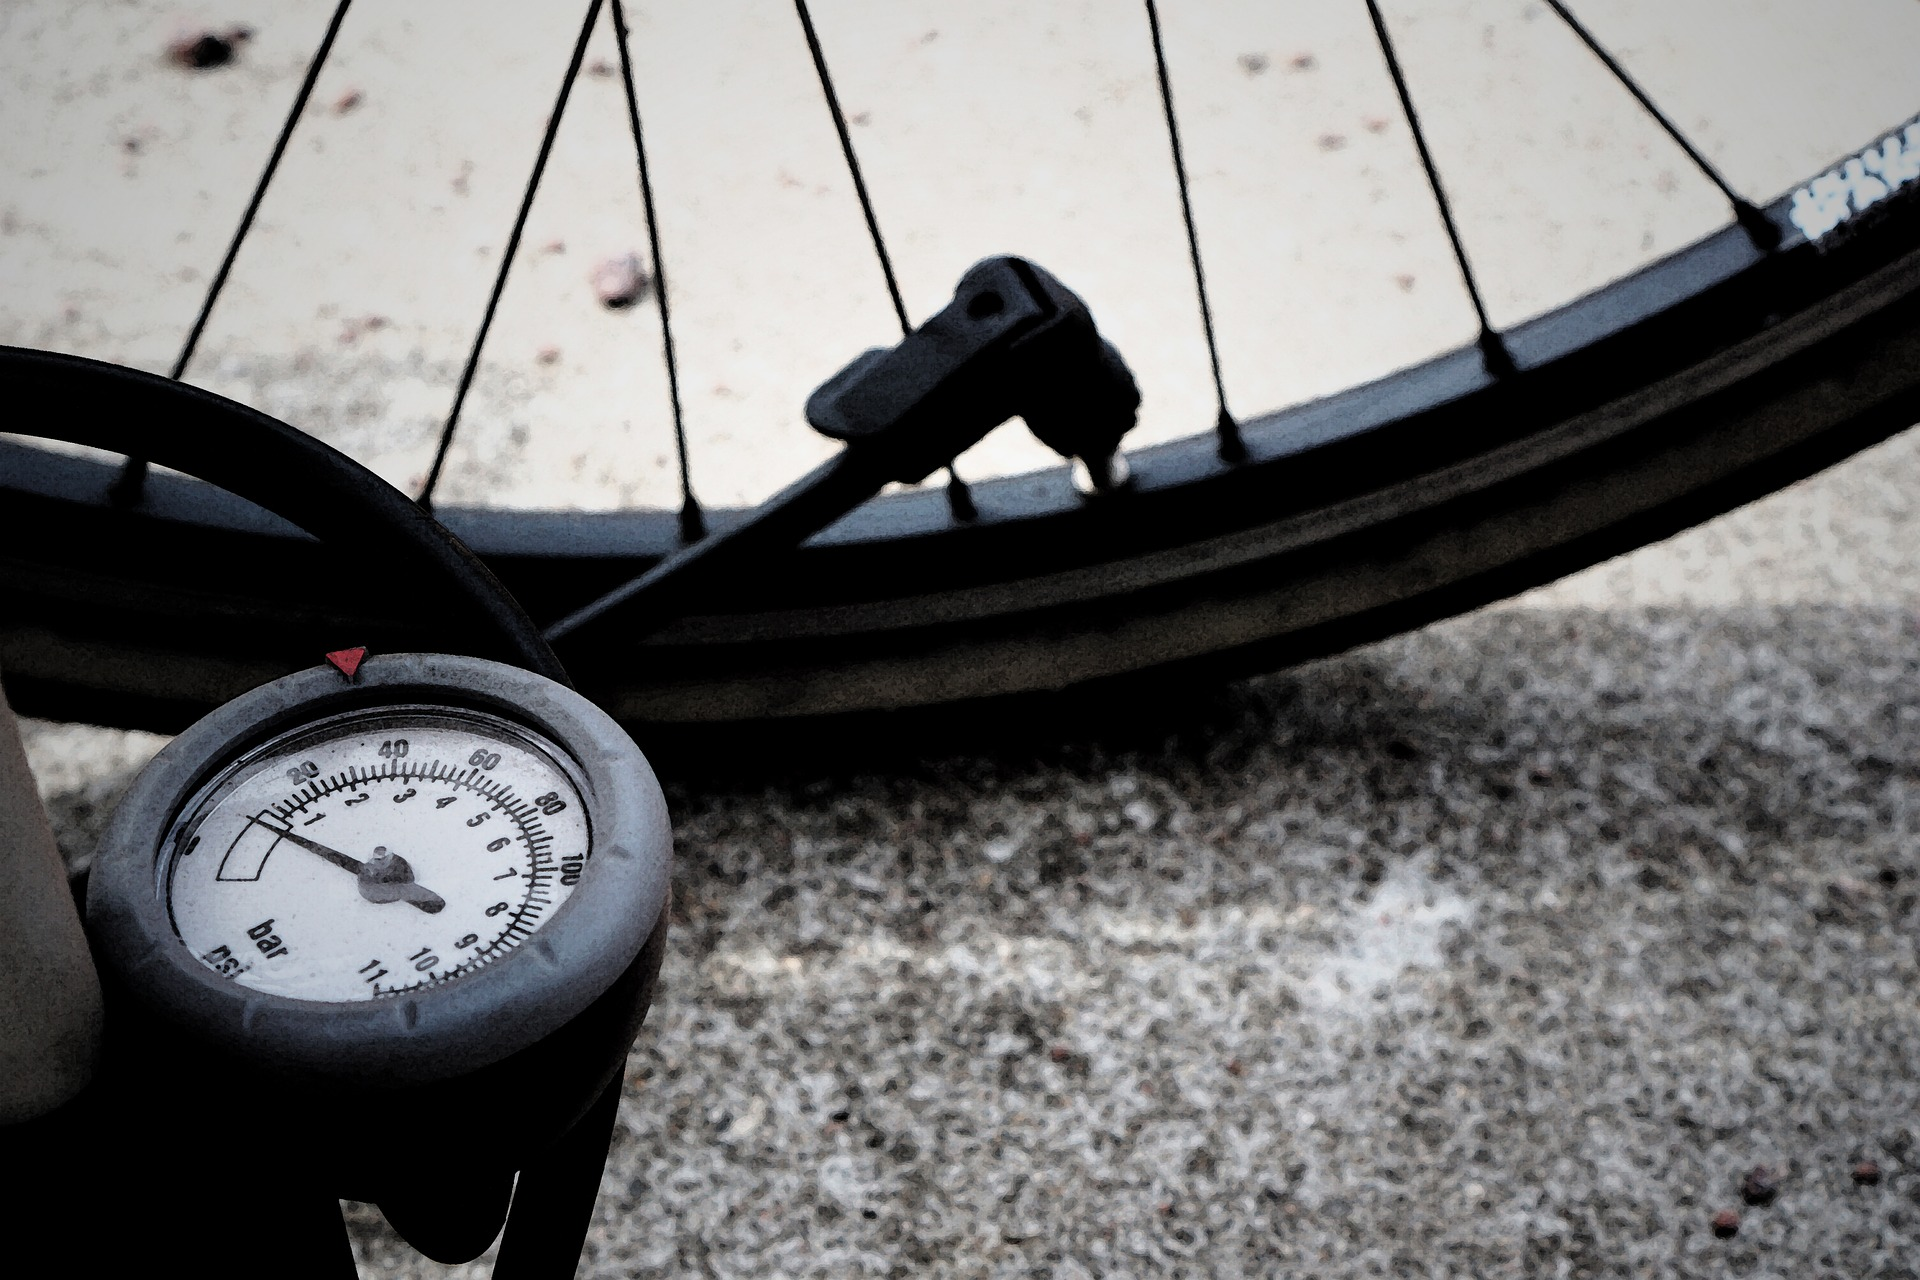 How-To Series ~ Basic Flat Repair and Bicycle Forum